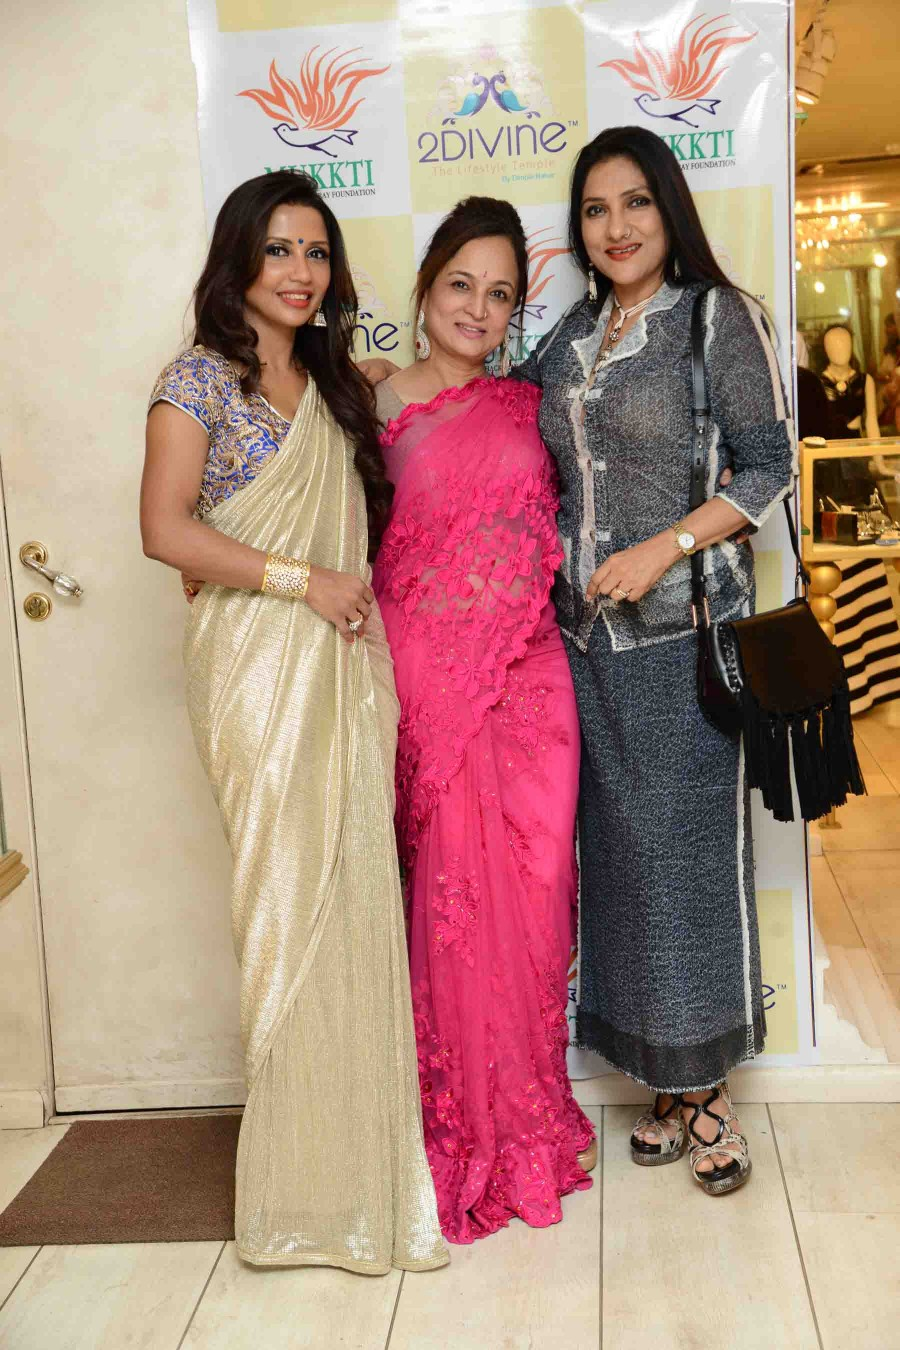 Dimple Nahar,Smita Thackeray,Pre-Women's Day Soiree,The 2Divine Store,2Divine Store,Women Power,special pre-women's